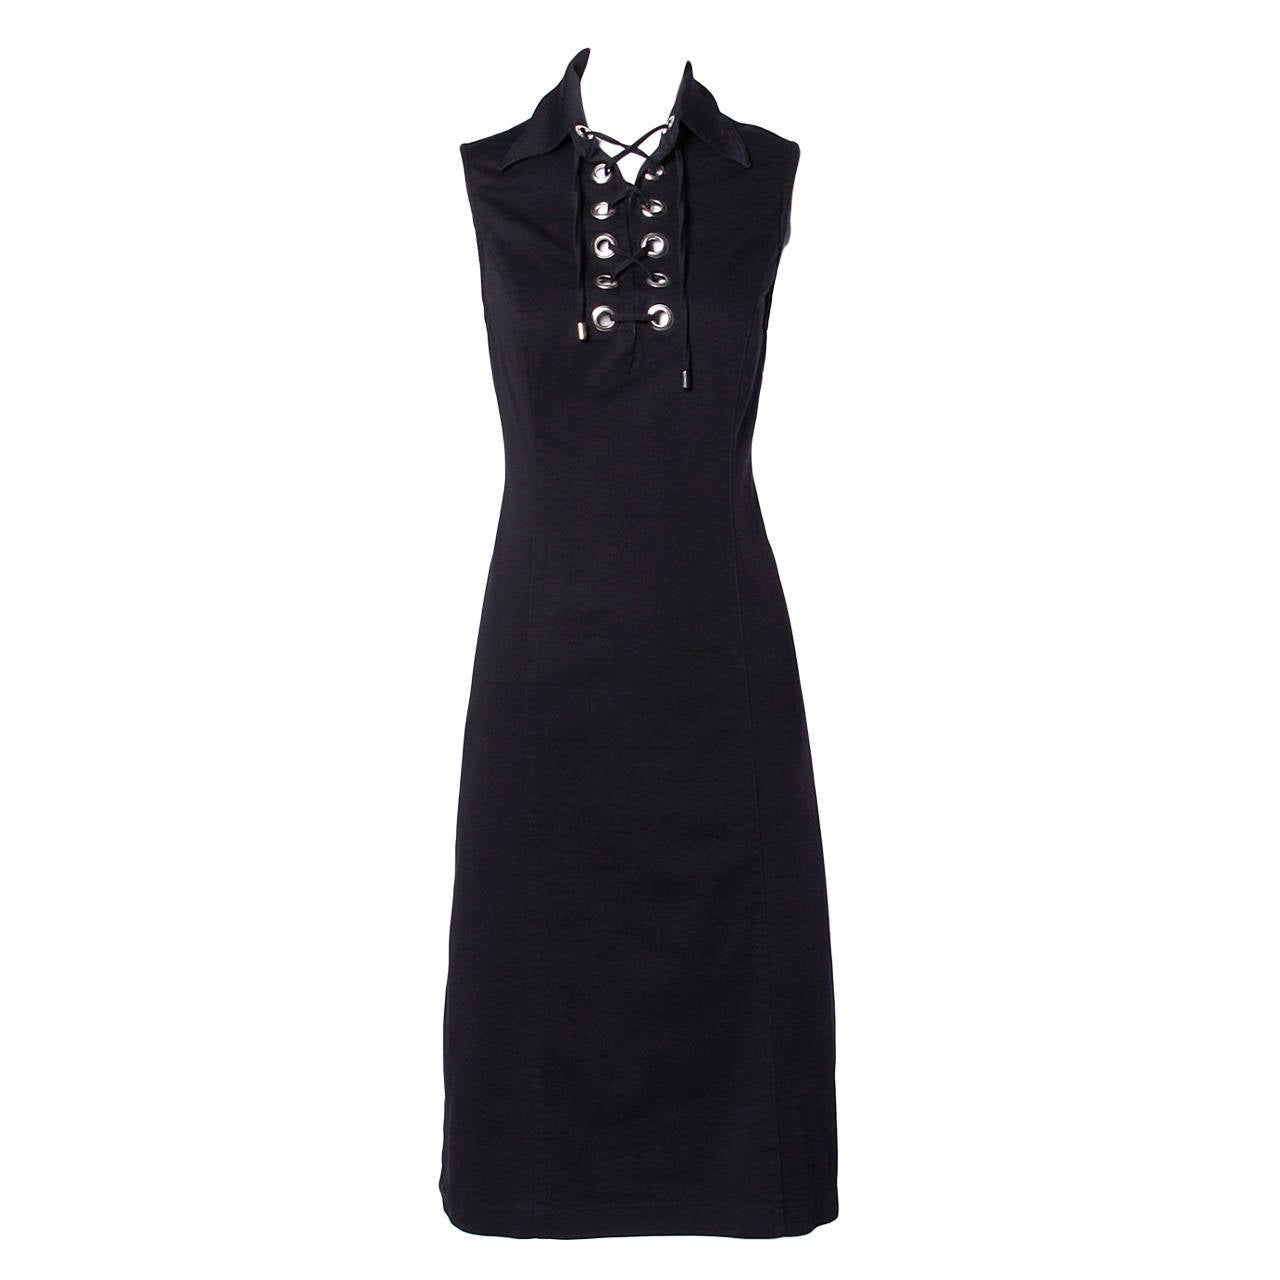 Moschino Vintage 1990s 90s Black Lace Up Grommet Sheath Dress